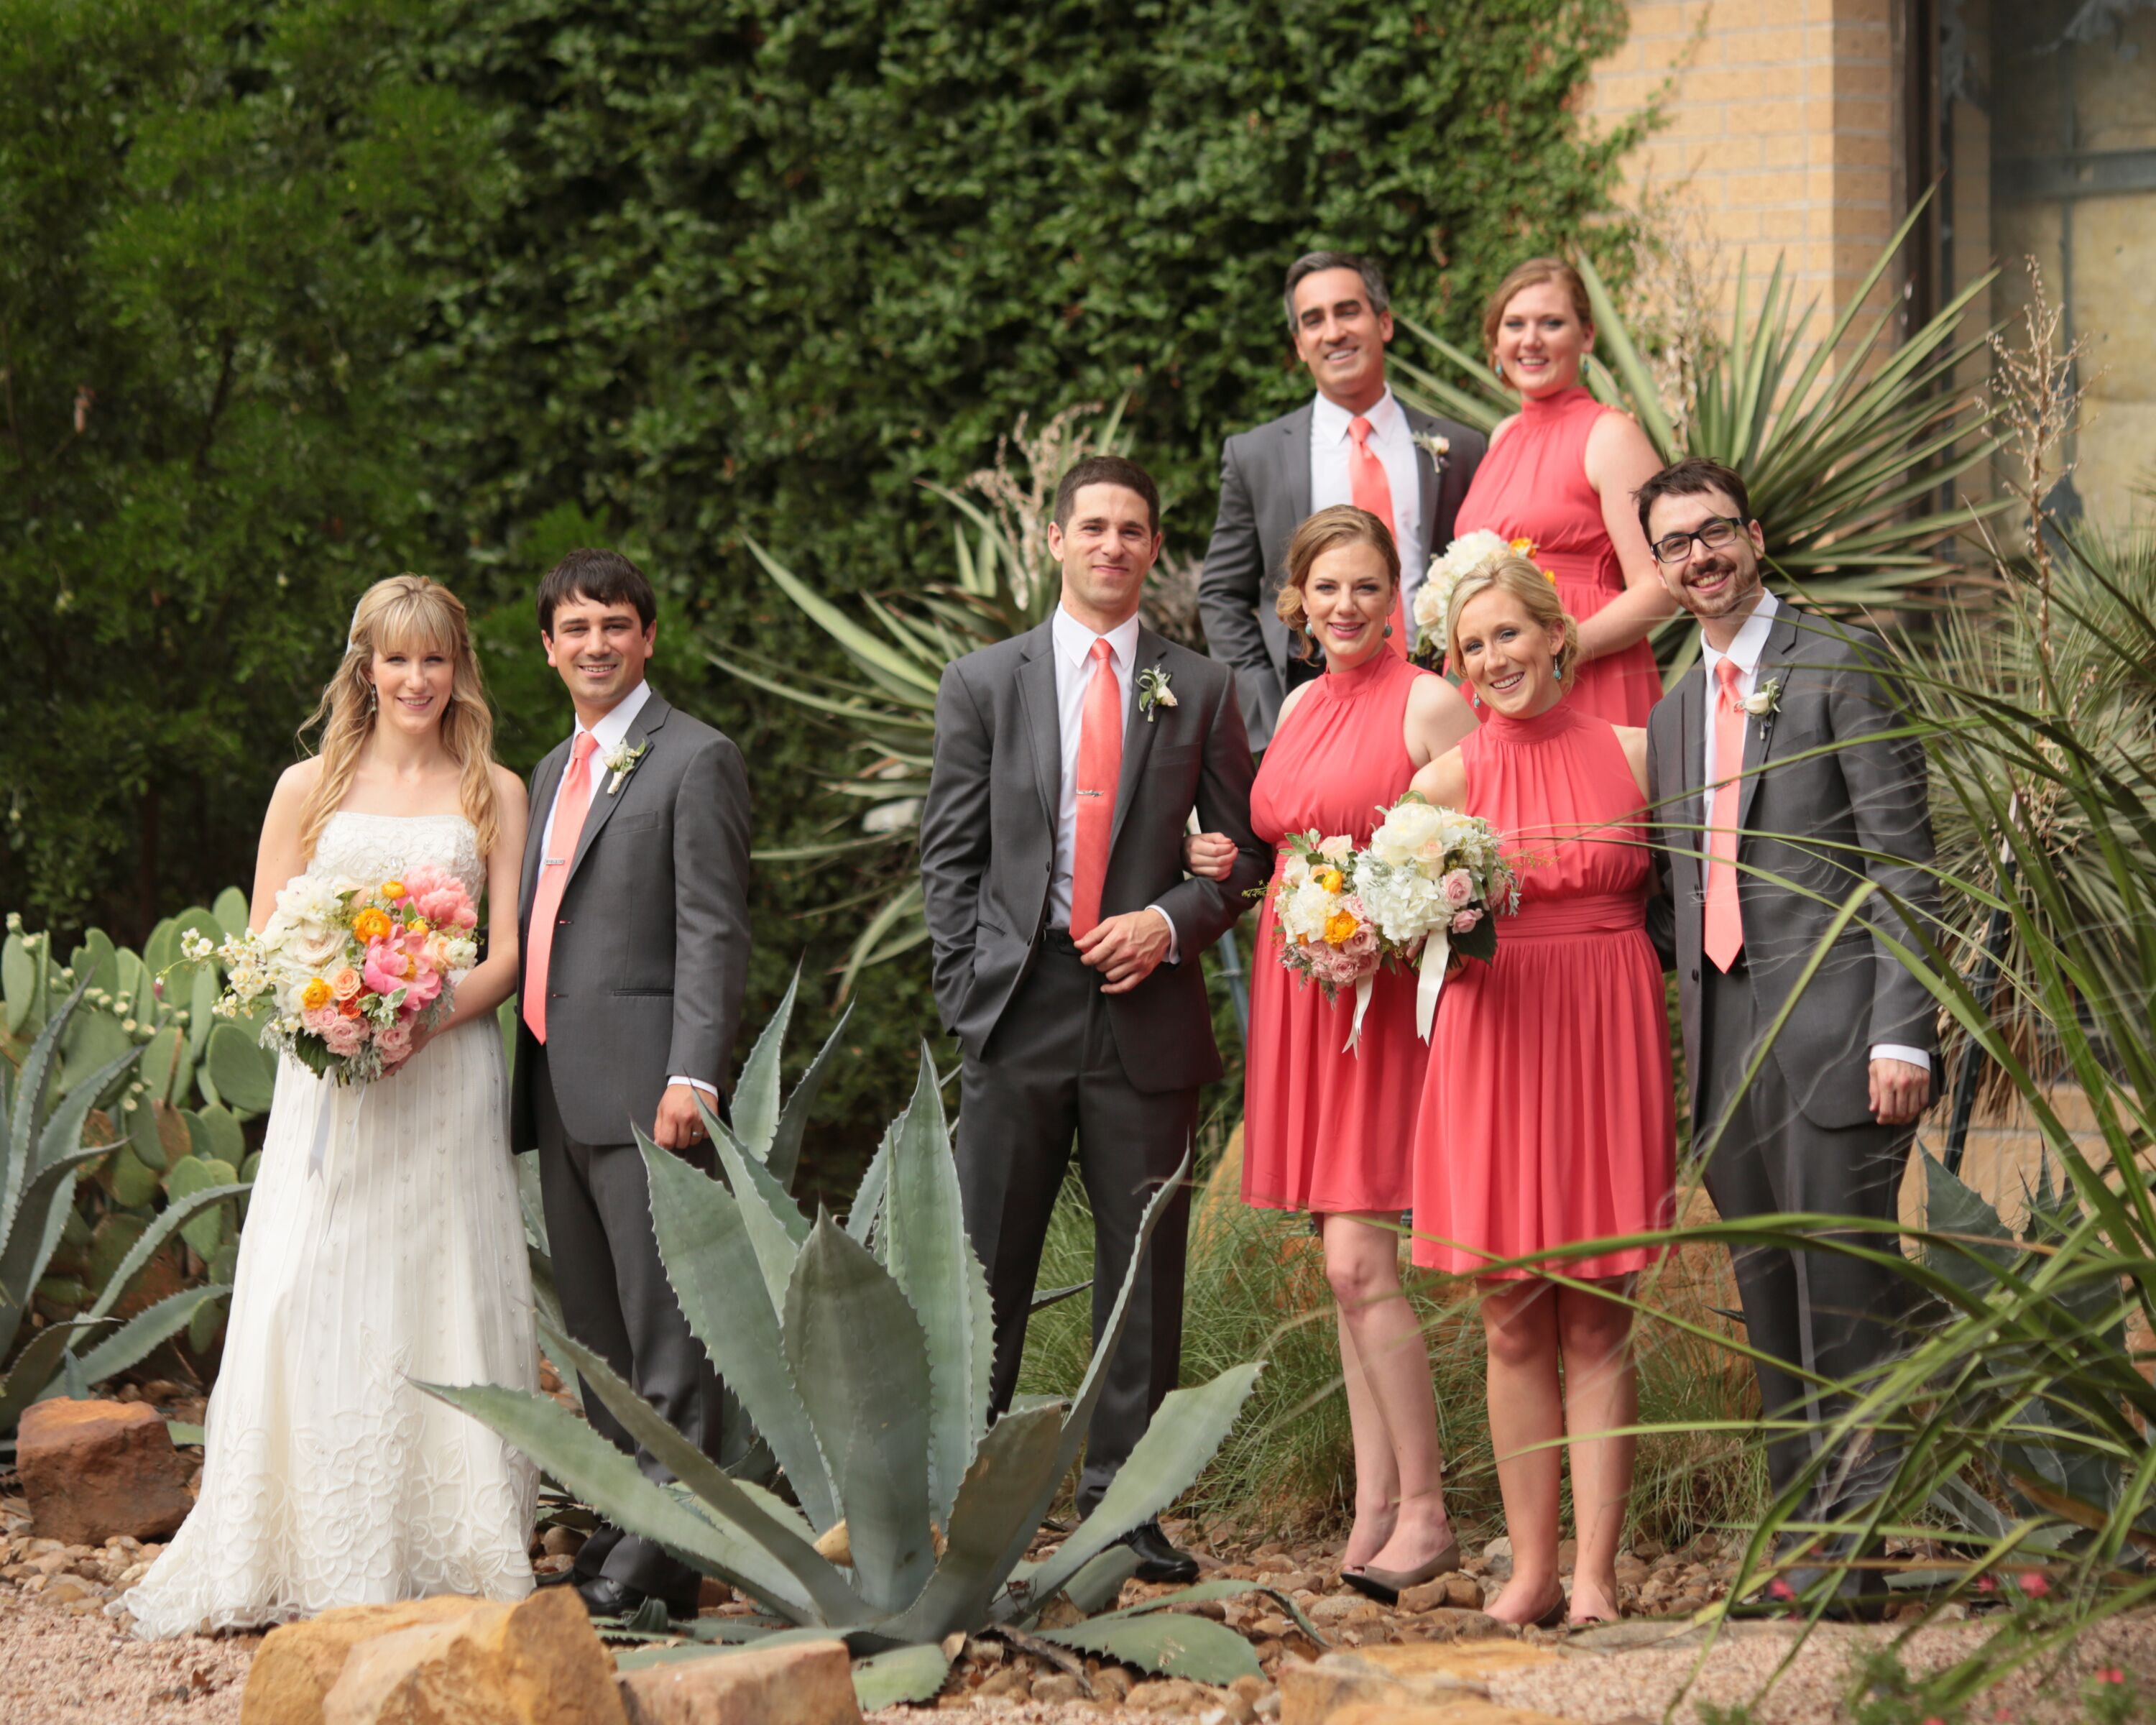 Coral Bridesmaid Dresses With Gray Groomsmen Suits